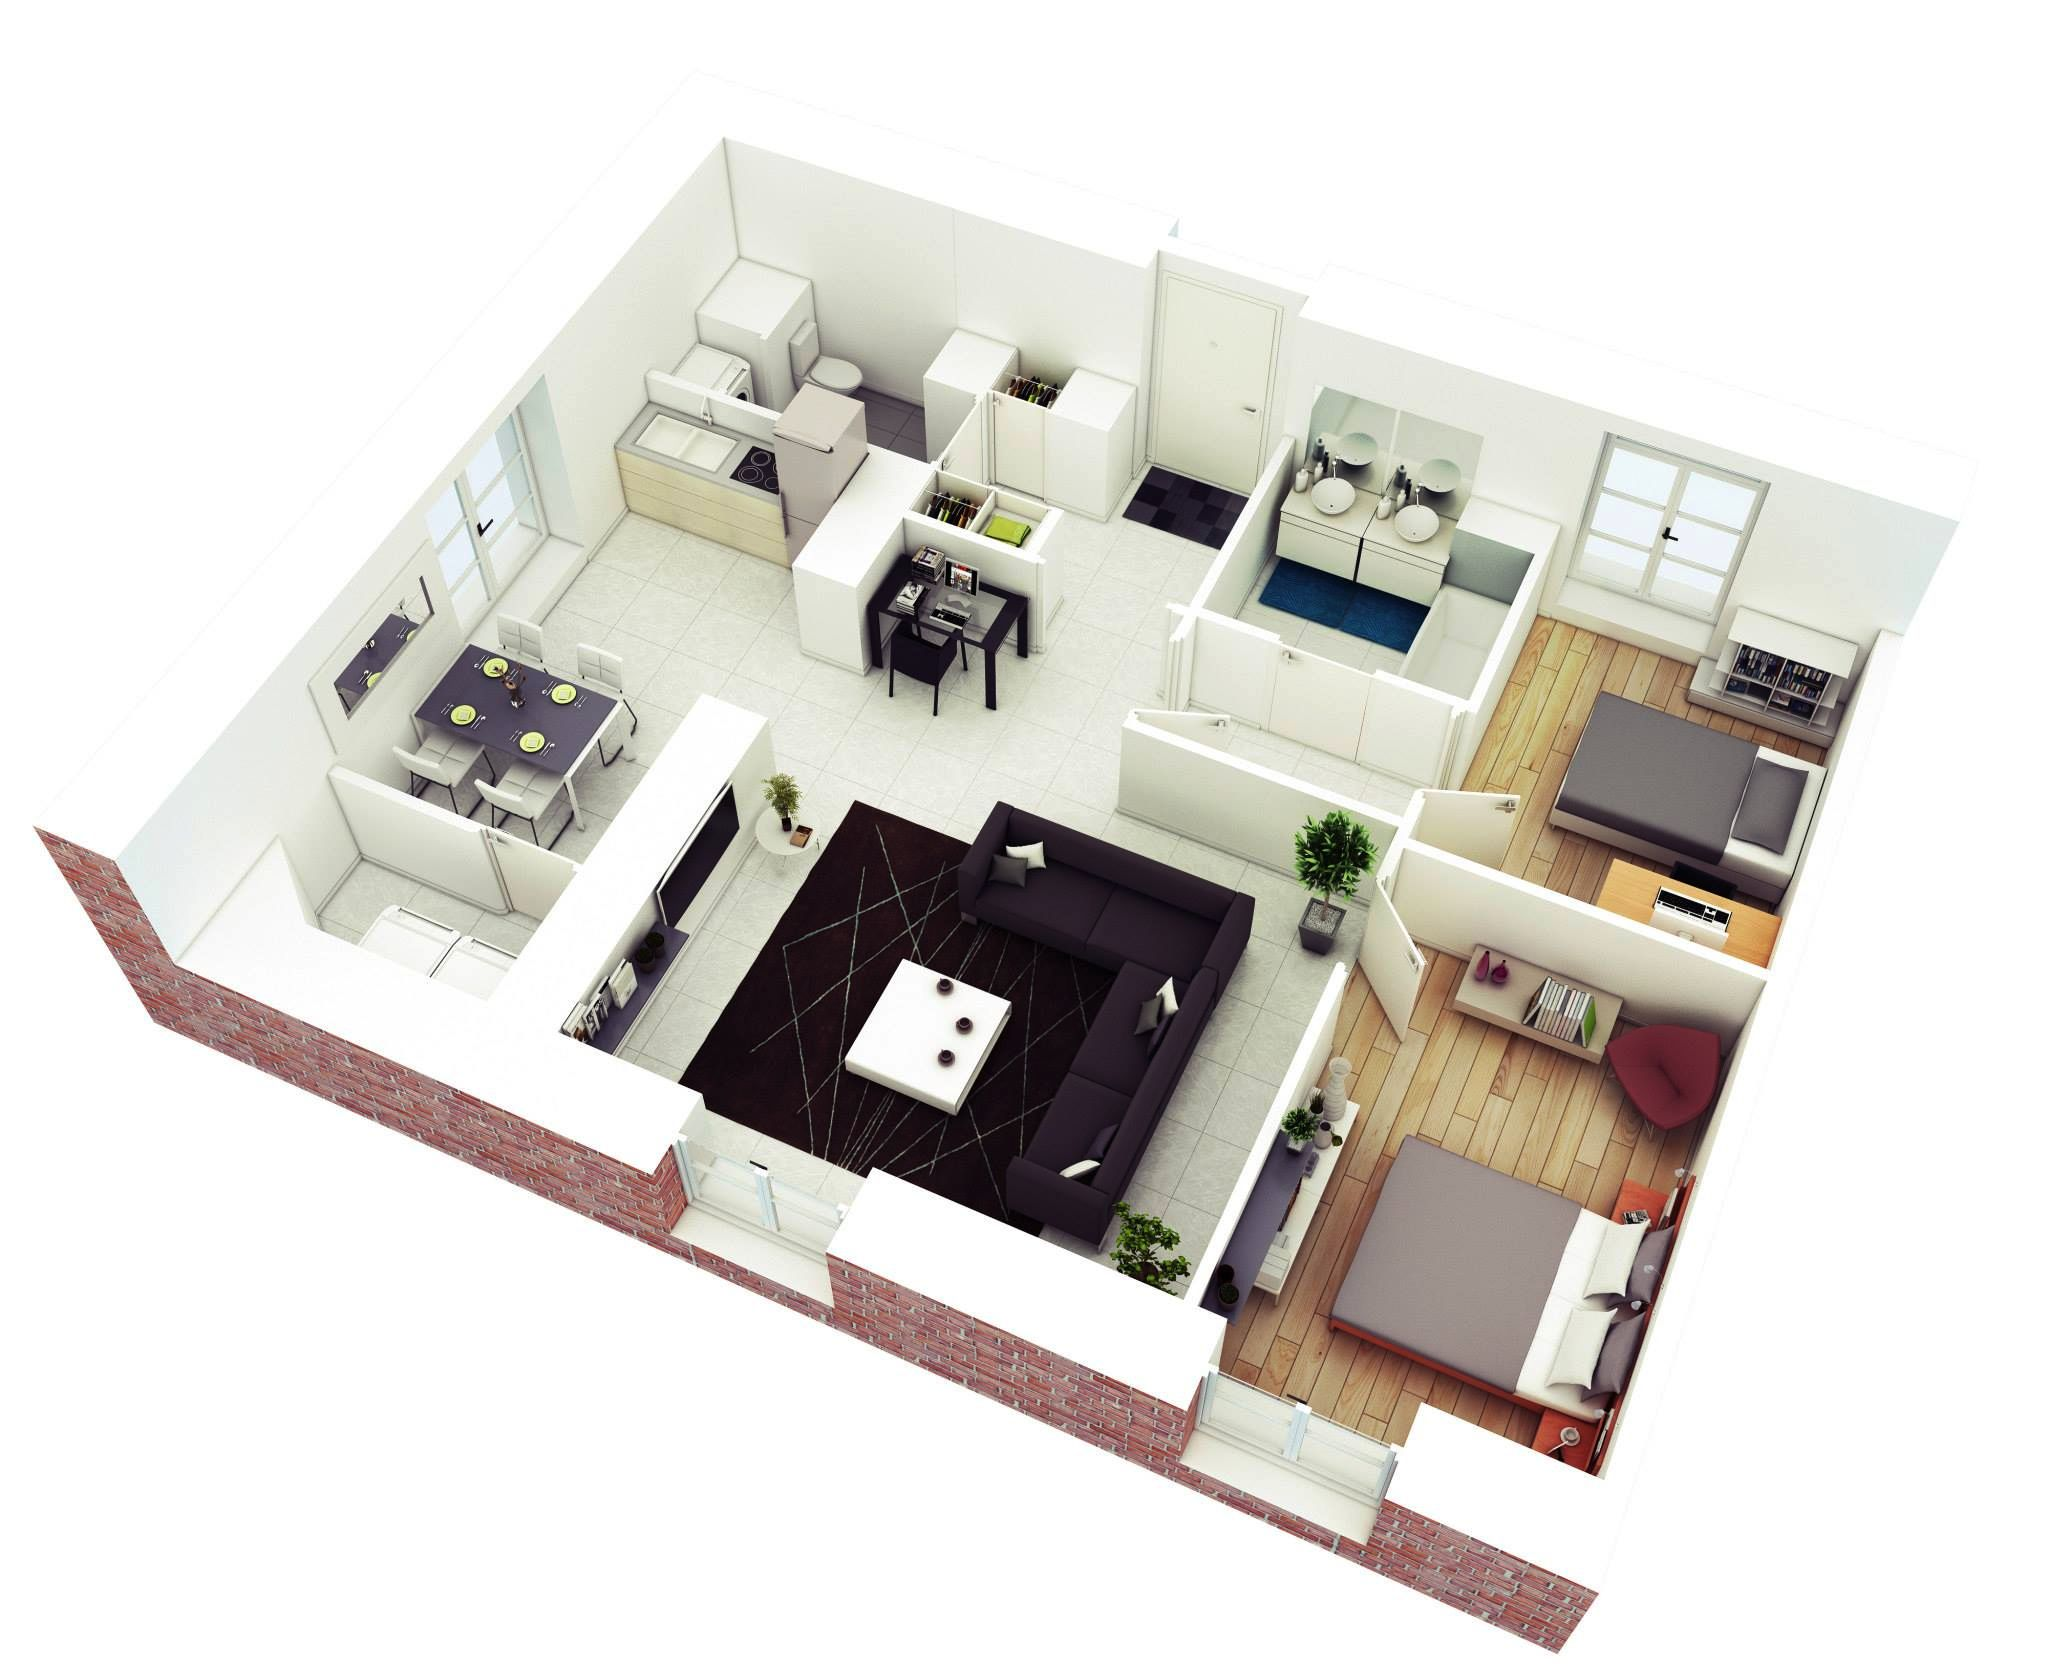 2 bedroom floor plans - 3d Plan For House